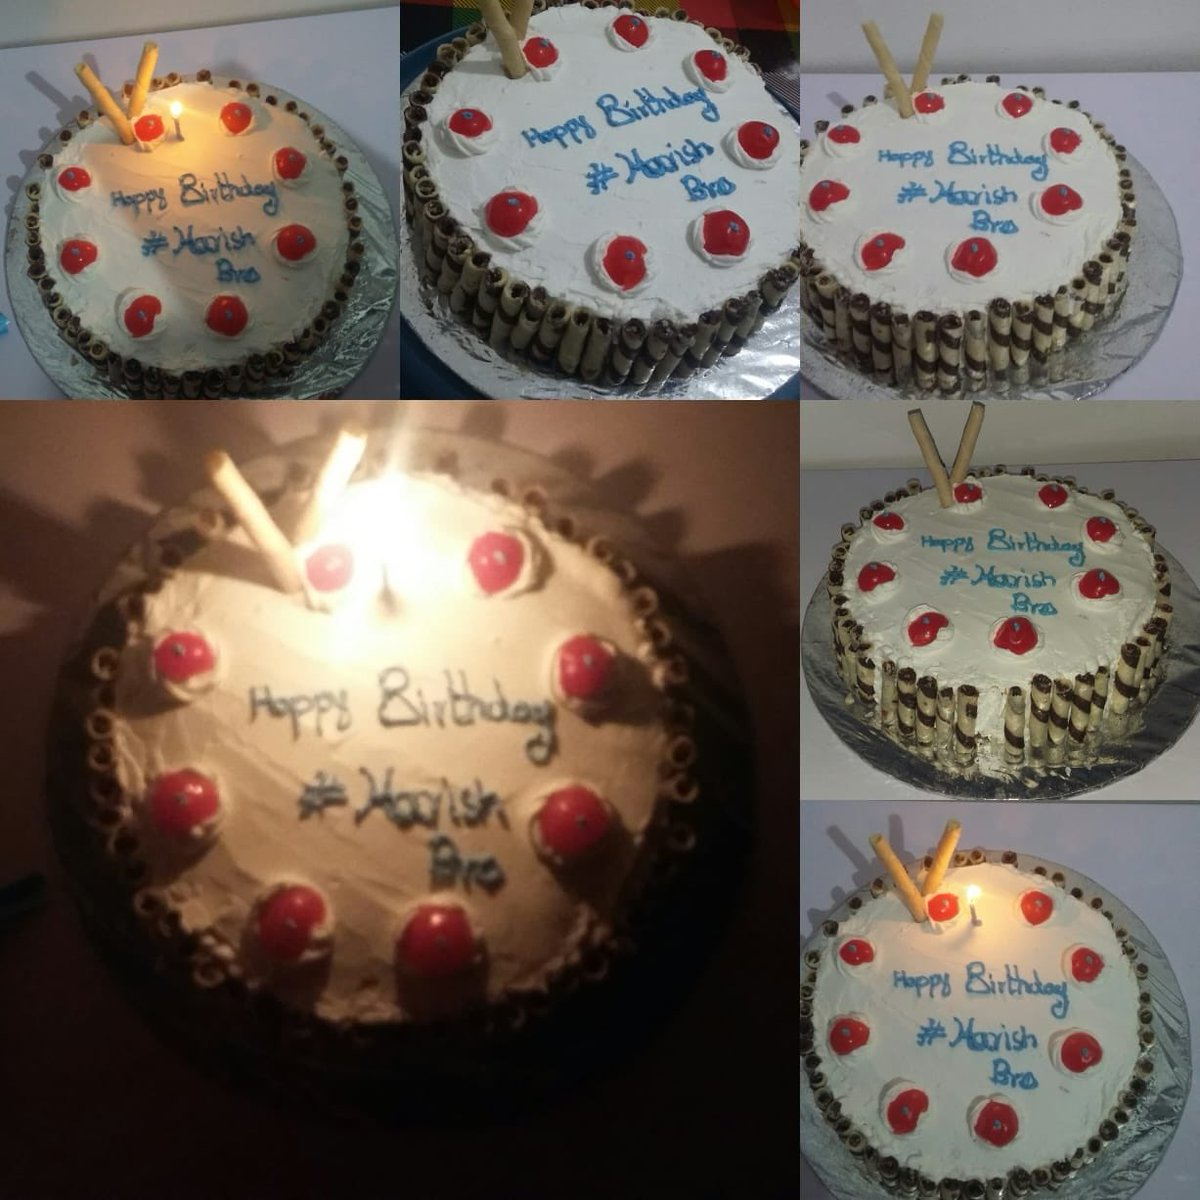 Birthday Cake For Rohit Bhai Happy Birthday Bhaiya Ji Cake Images